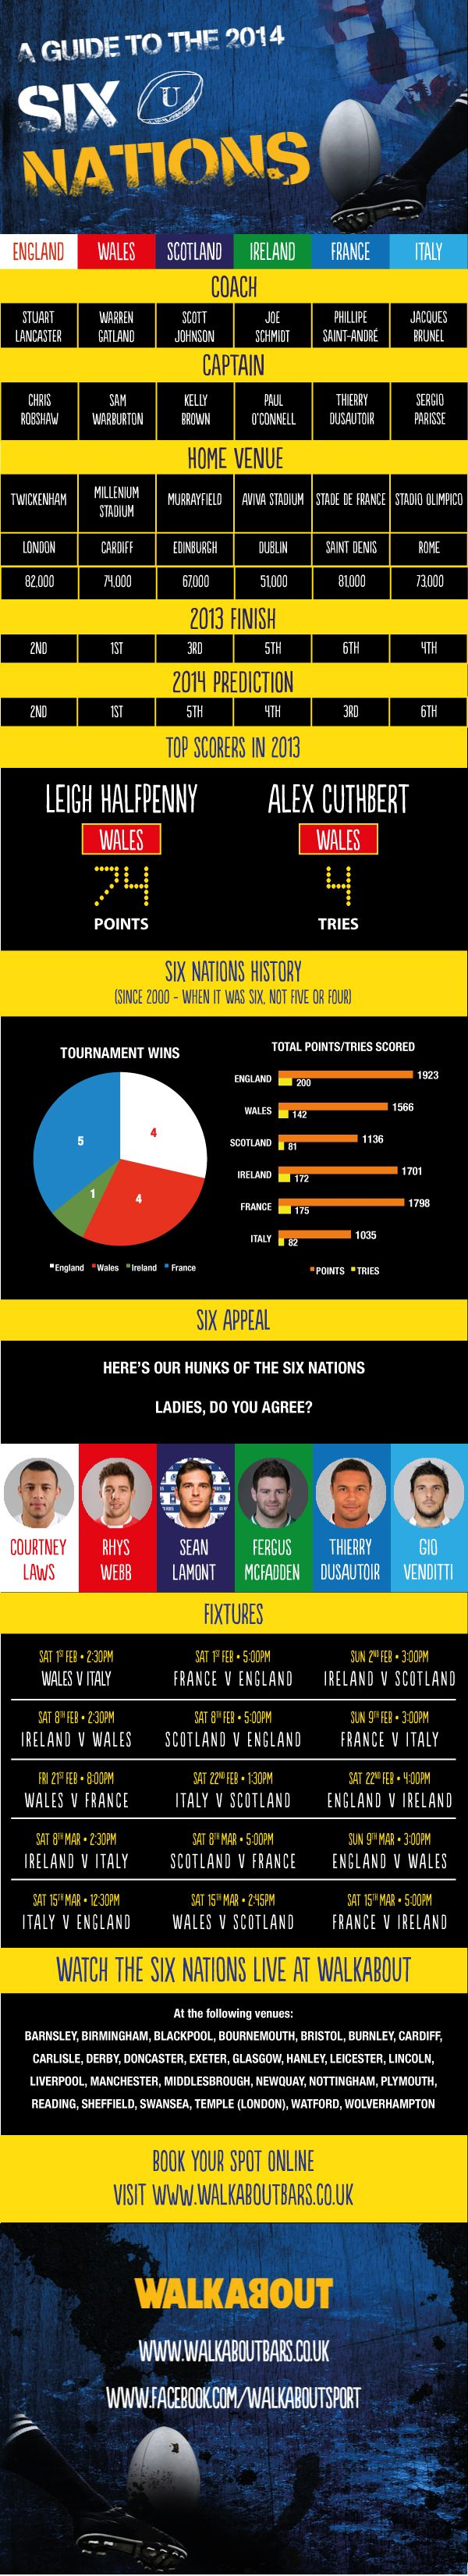 A Guide To The 2014 Six Nations   #Infographic #rugby #Sports